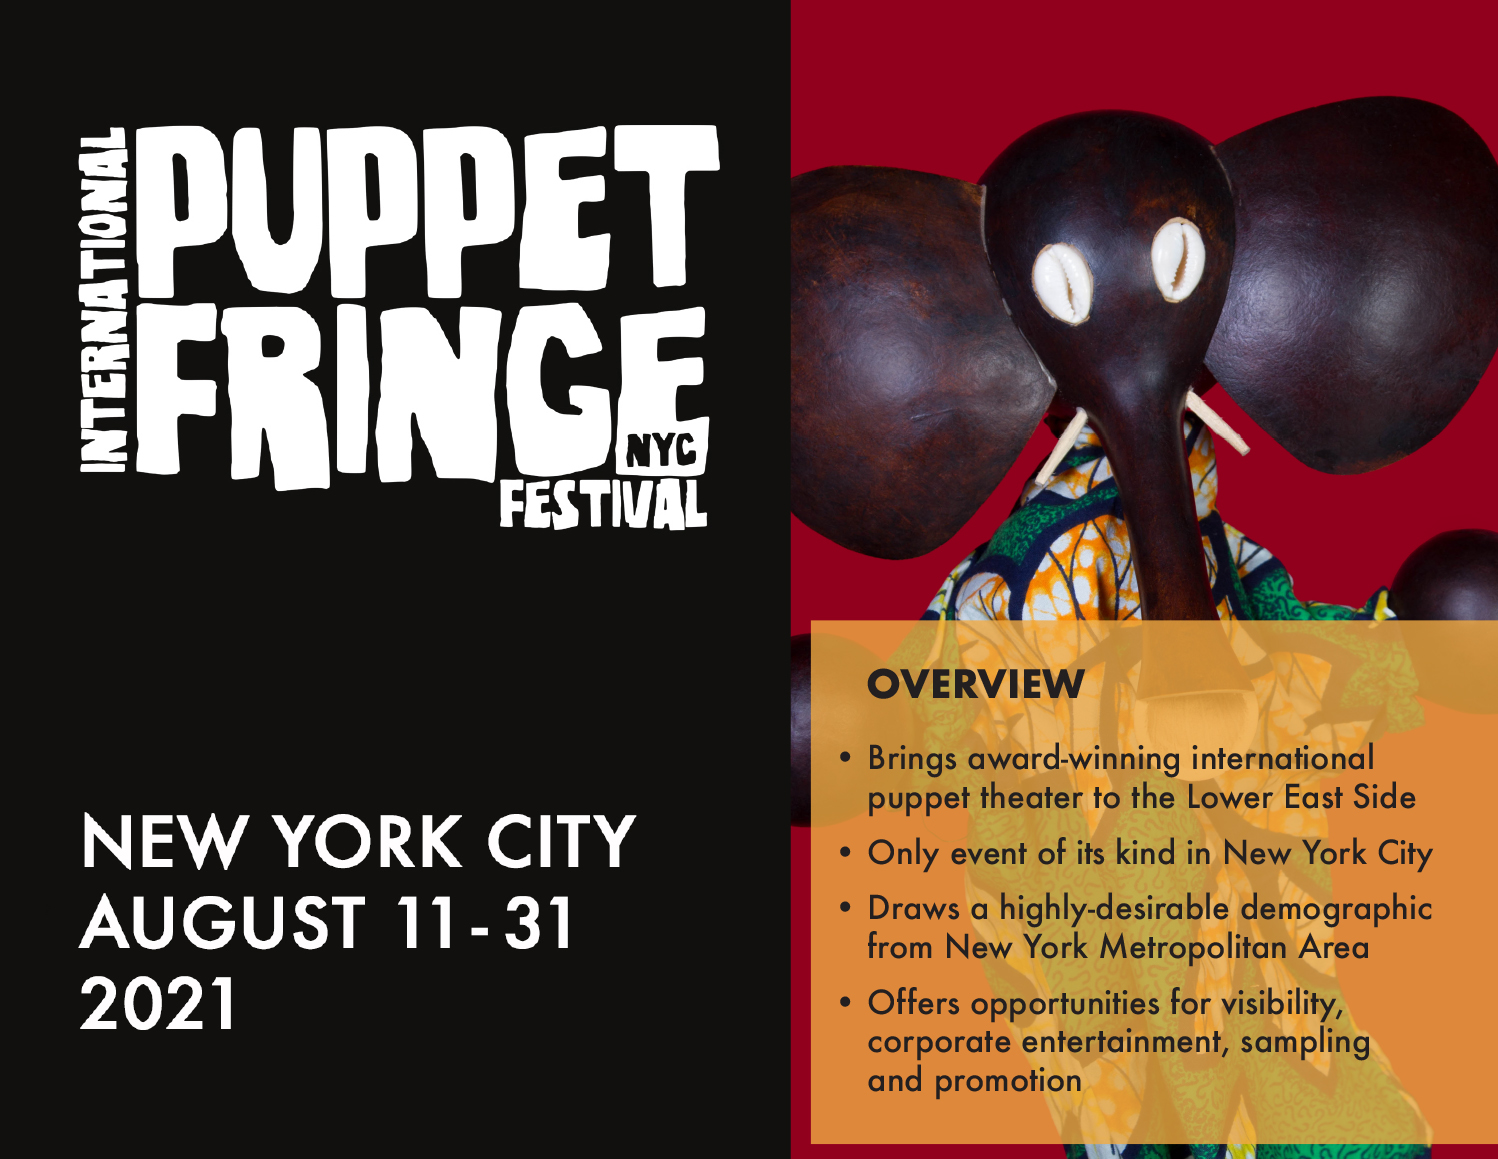 PuppetFringeNYC-2021-2